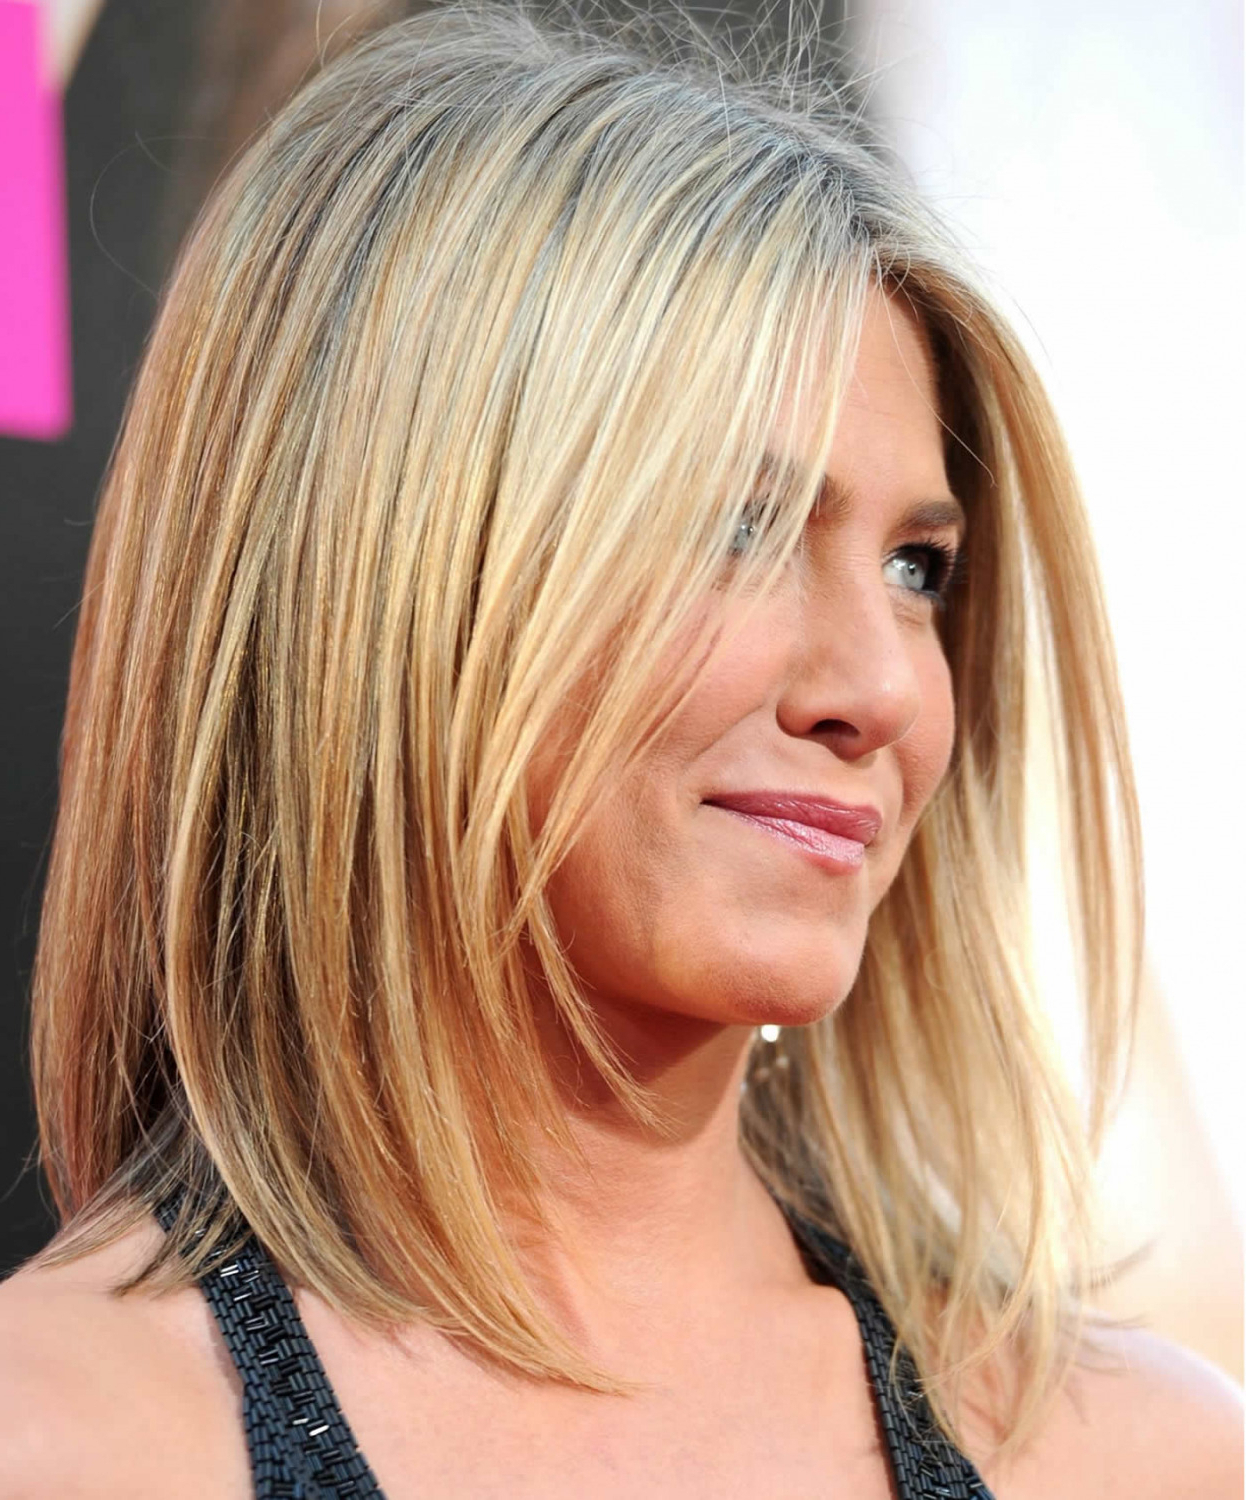 Medium Hairstyle : Surprising Medium Length Straight Hairstyles For For Popular Medium Haircuts For Oval Faces (View 11 of 20)